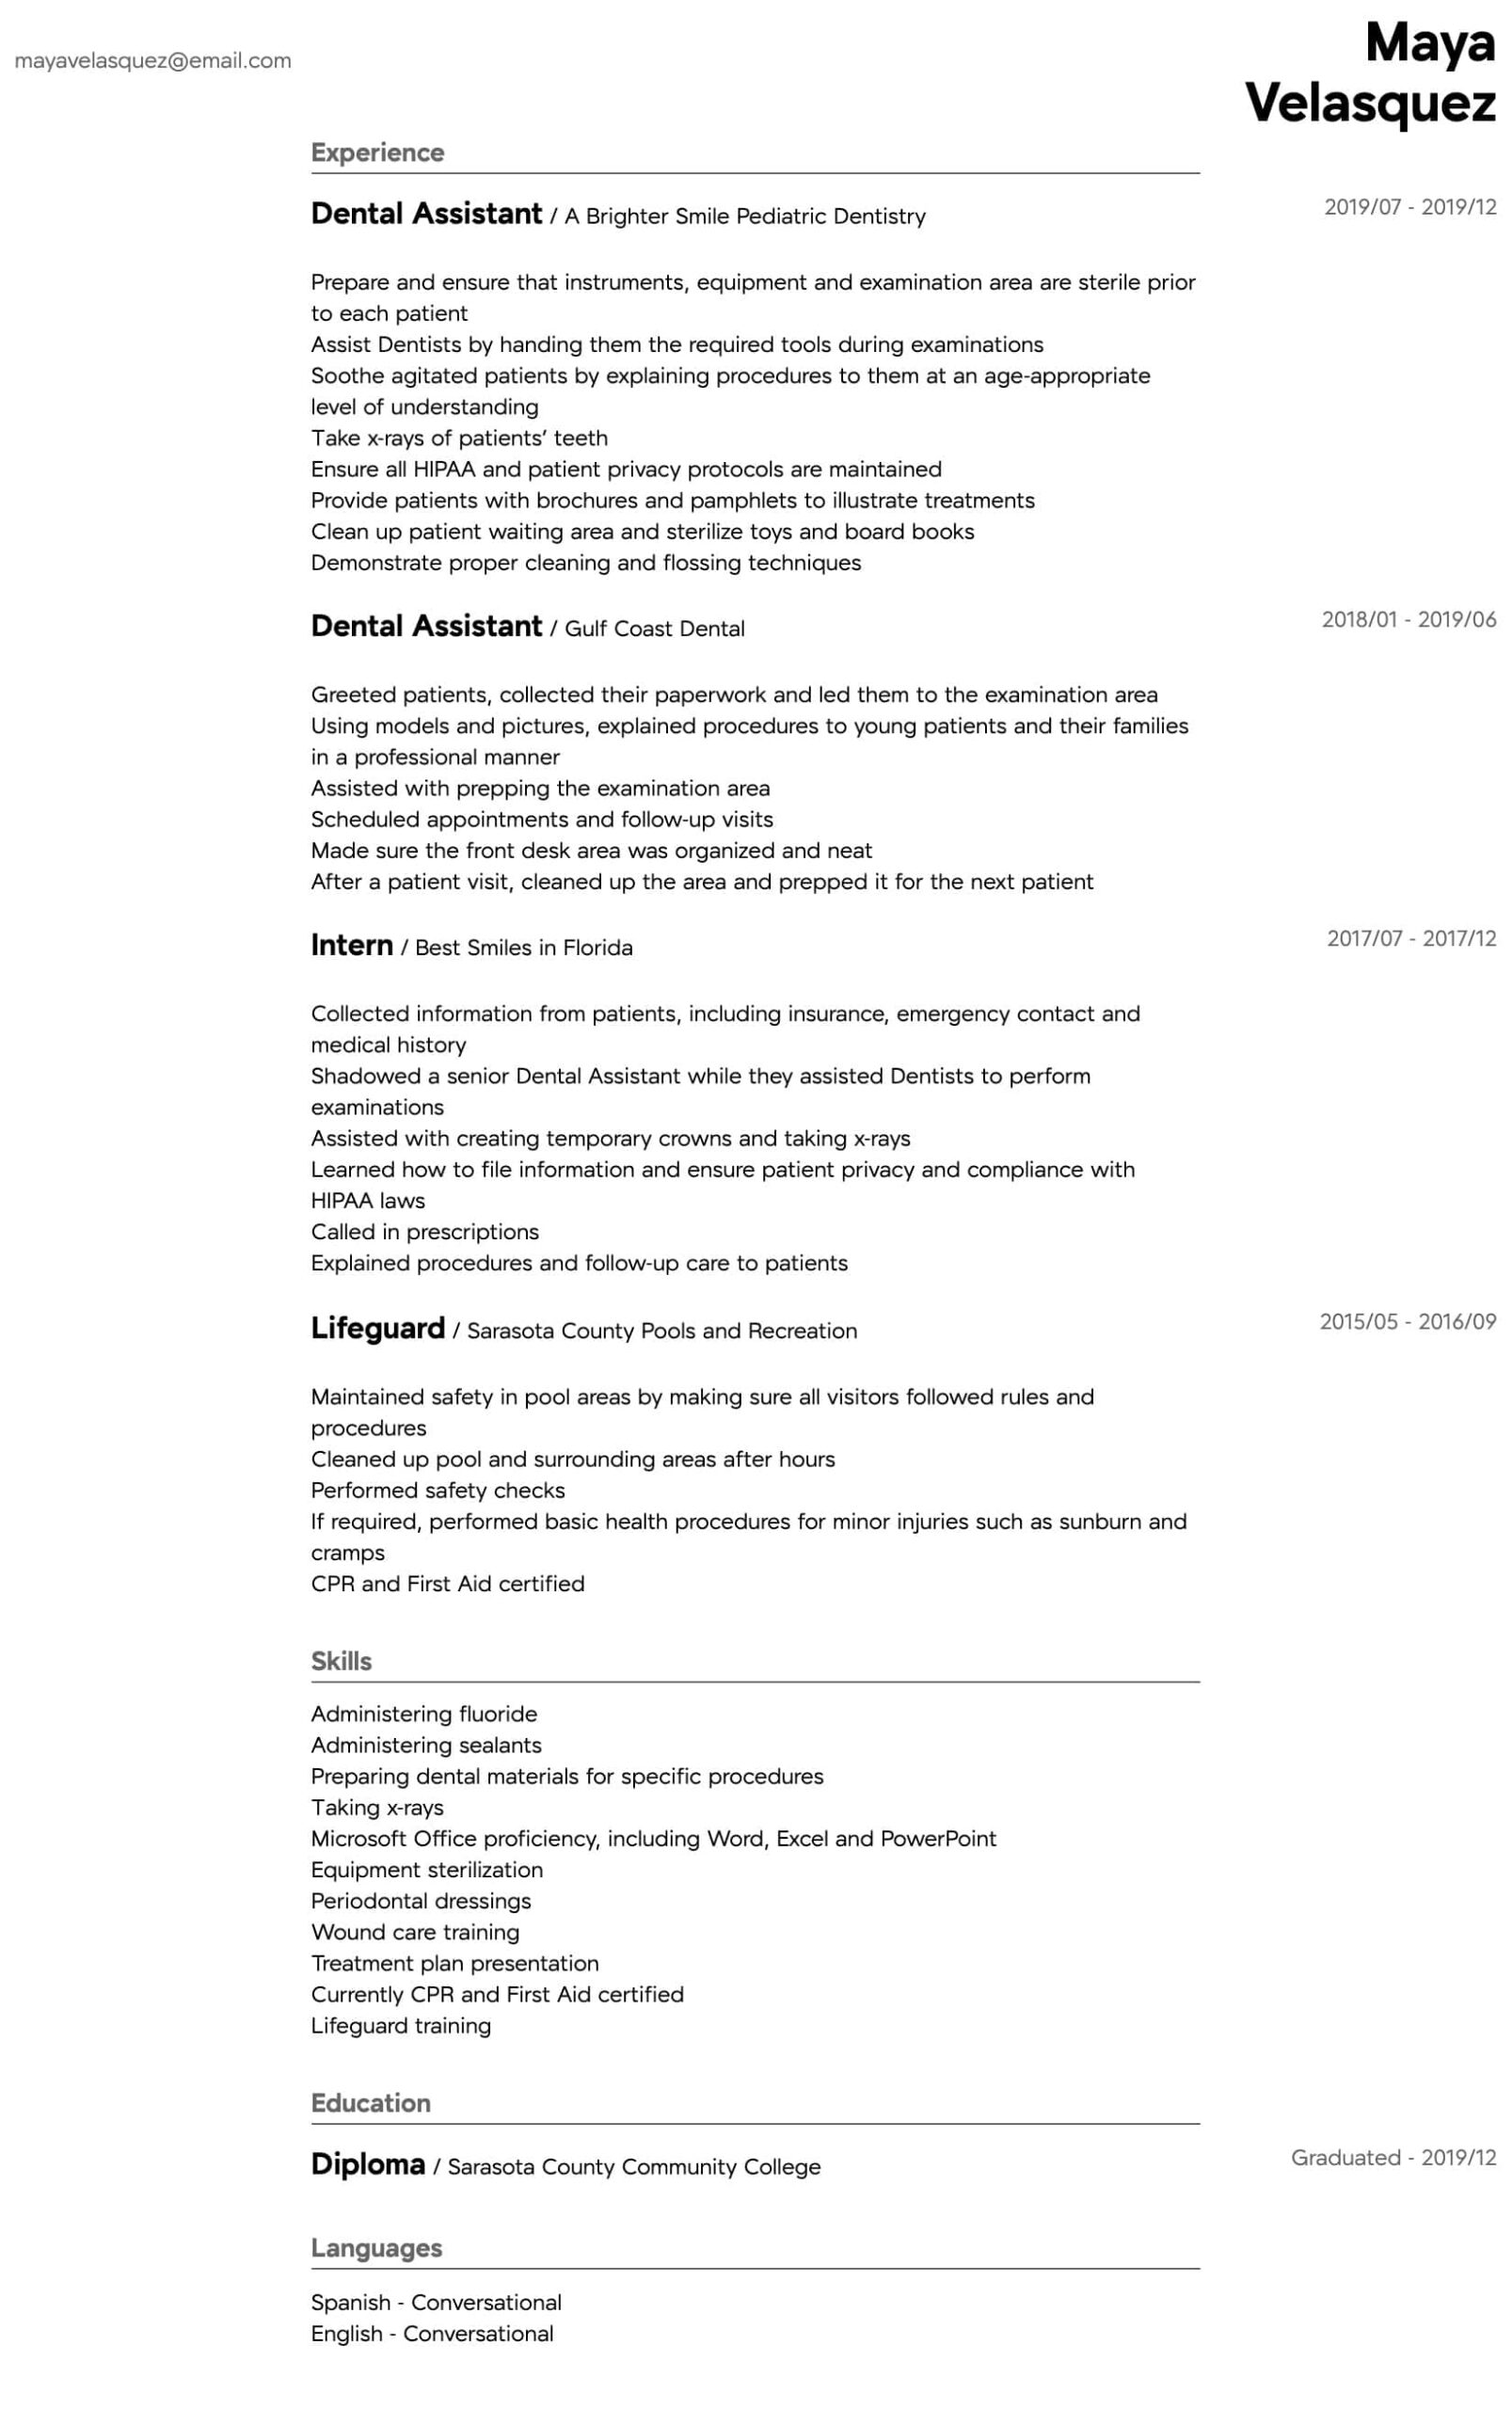 dental assistant resume samples all experience levels skills examples intermediate Resume Dental Assistant Resume Skills Examples